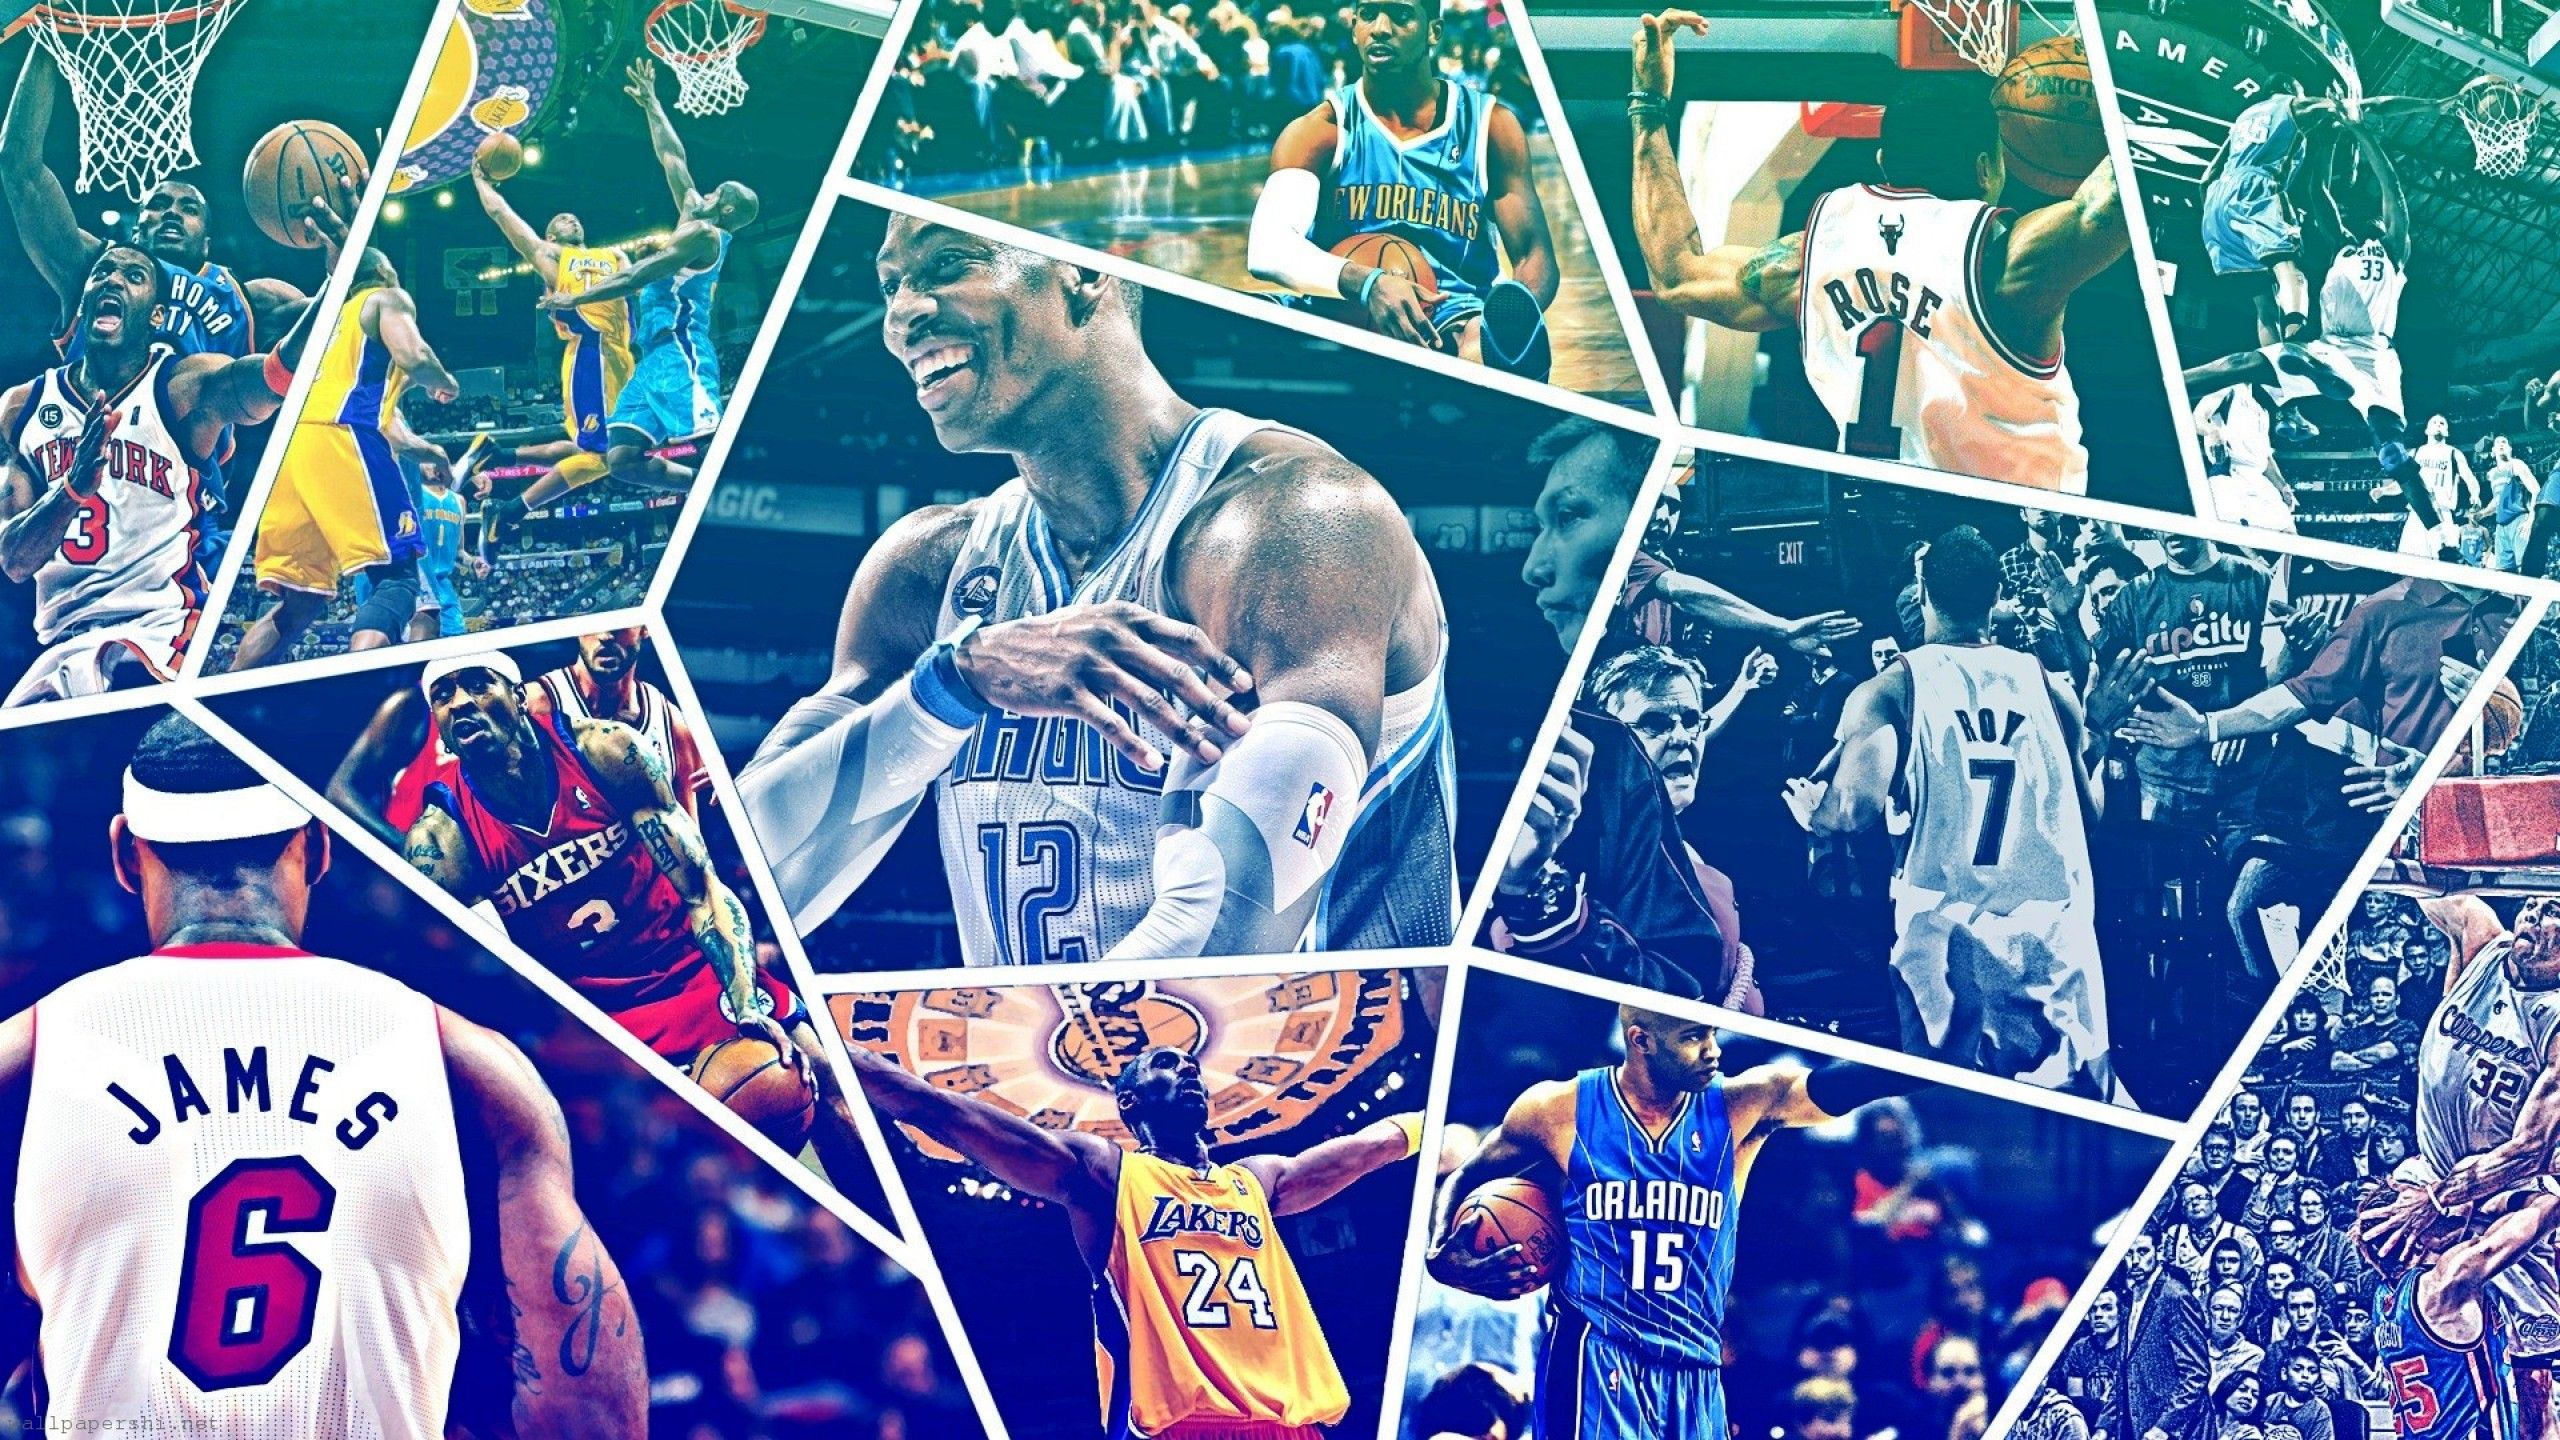 Sports Wallpaper For Android: Sports Wallpaper: Sports Collage Android Wallpapers For HD